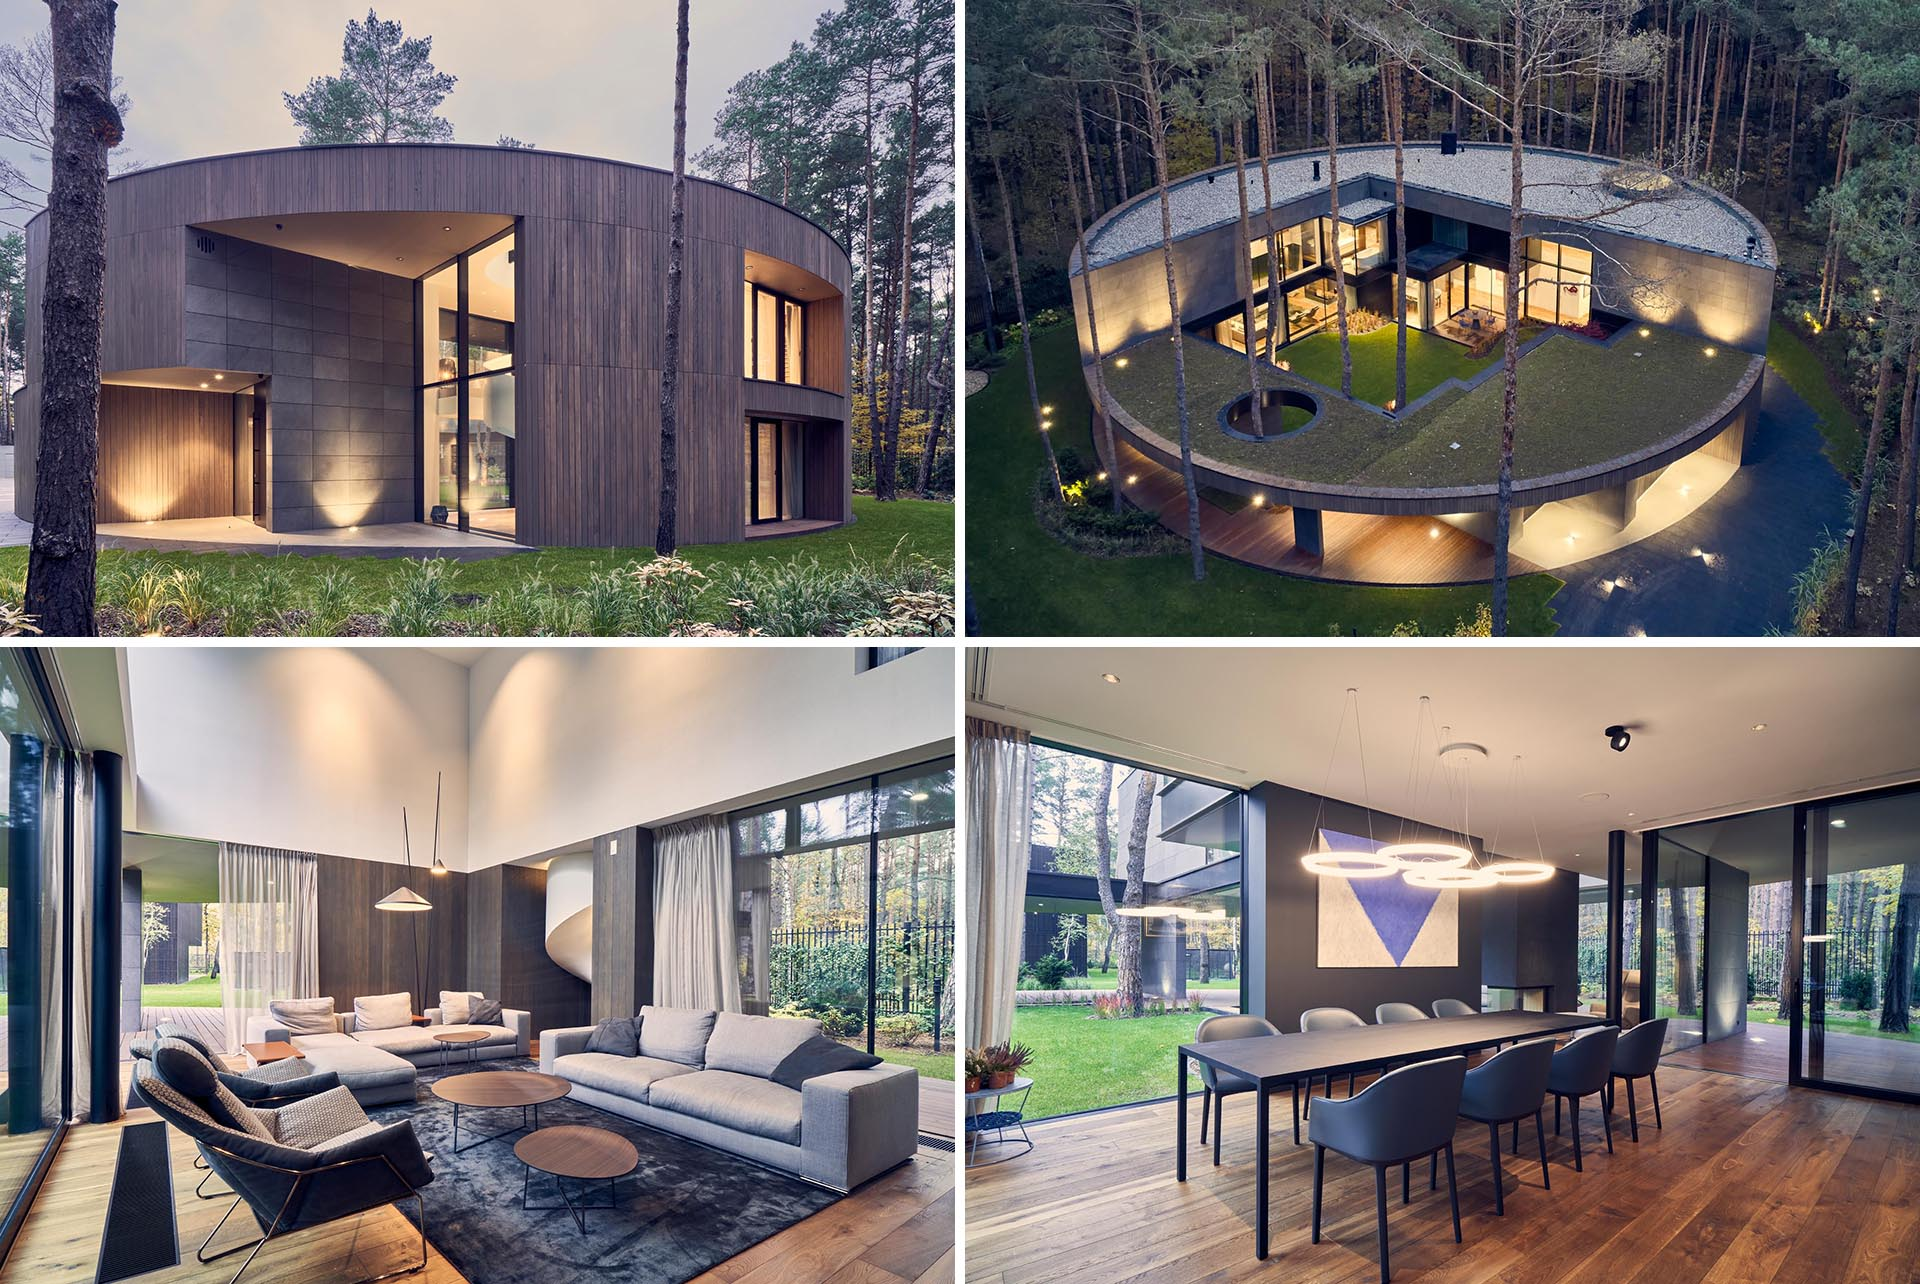 A modern circular home with a warm wood exterior that complements the surrounding forest.